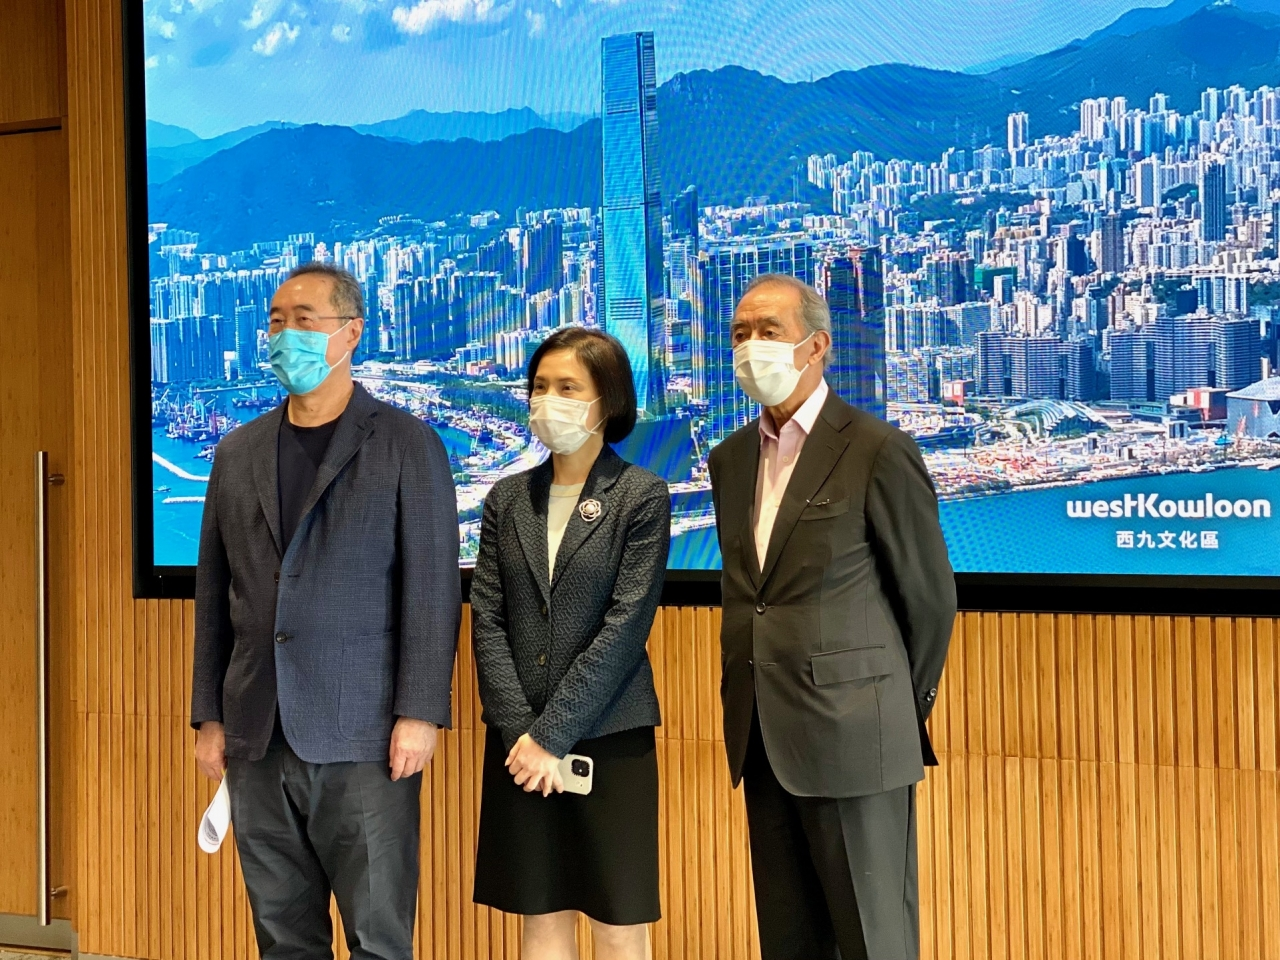 Betty Fung to head West Kowloon cultural hub